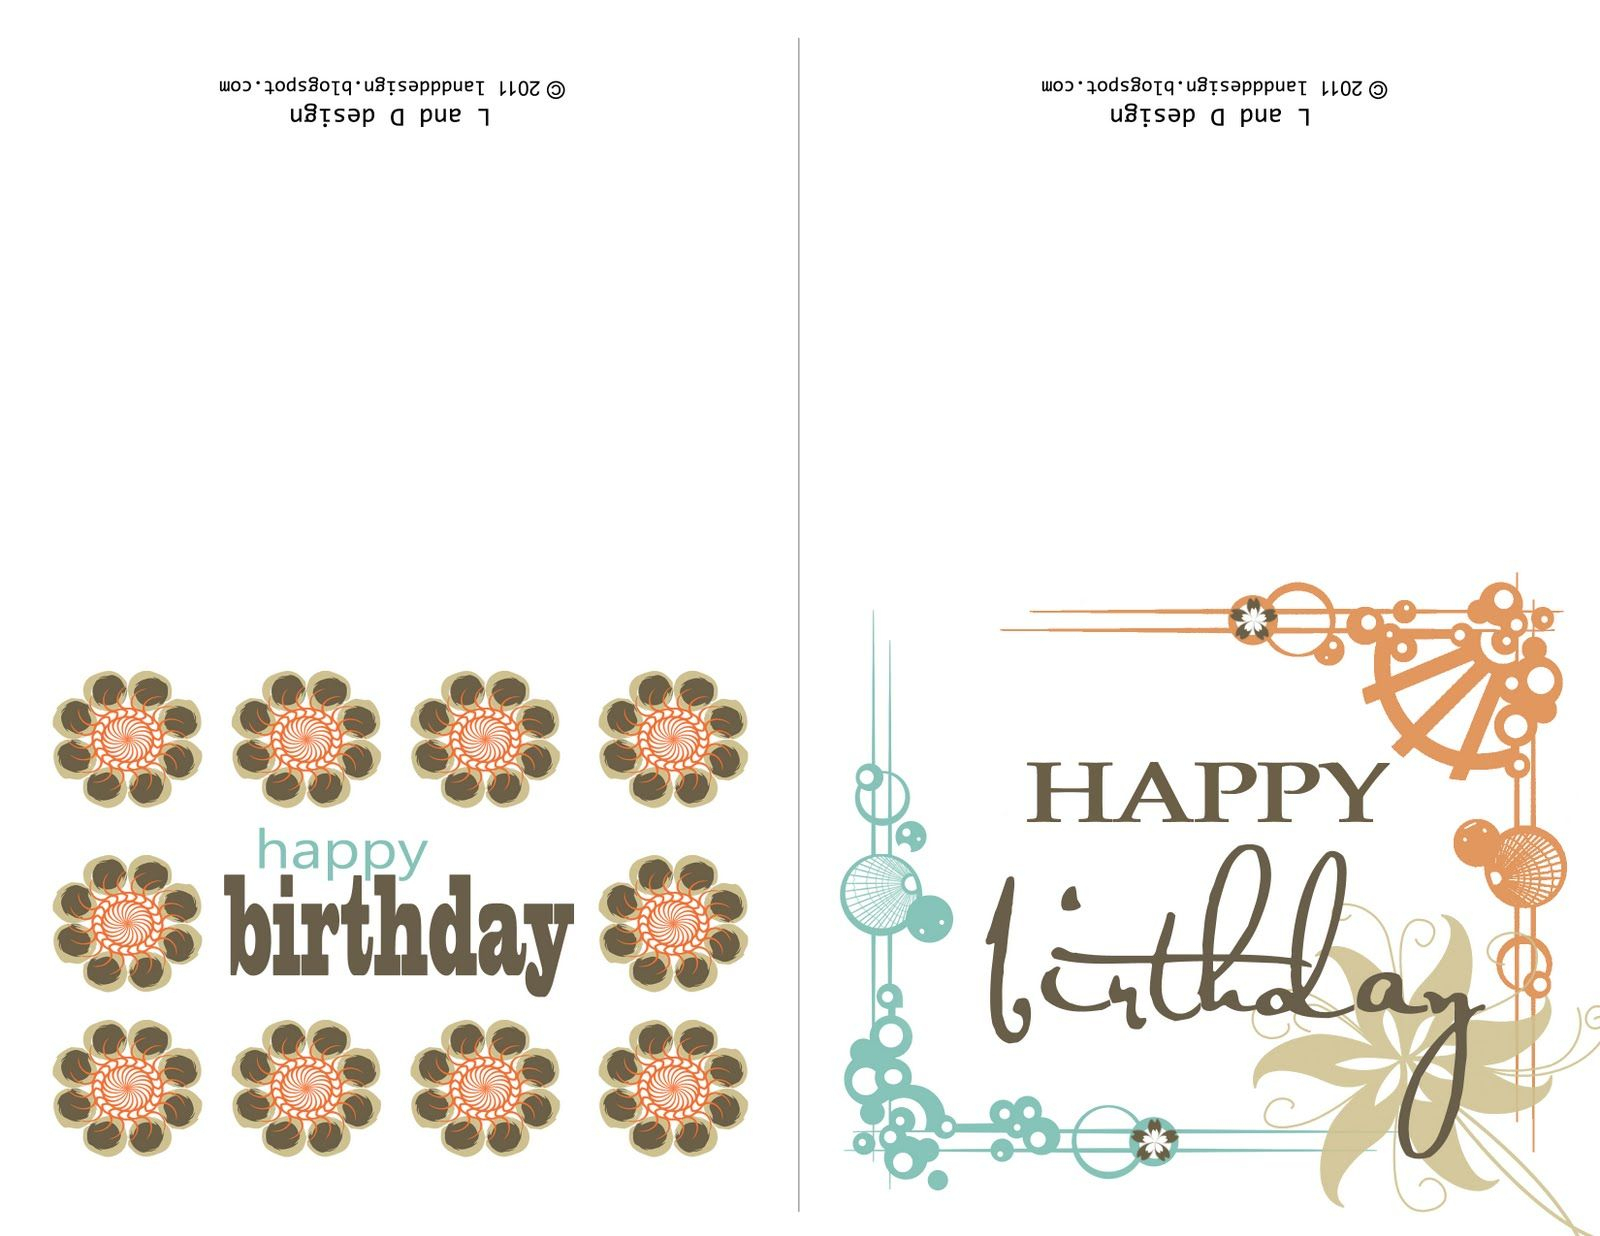 Printable Birthday Cards For Mom | Happy Birthday To You | Pinterest - Free Printable Personalized Birthday Cards